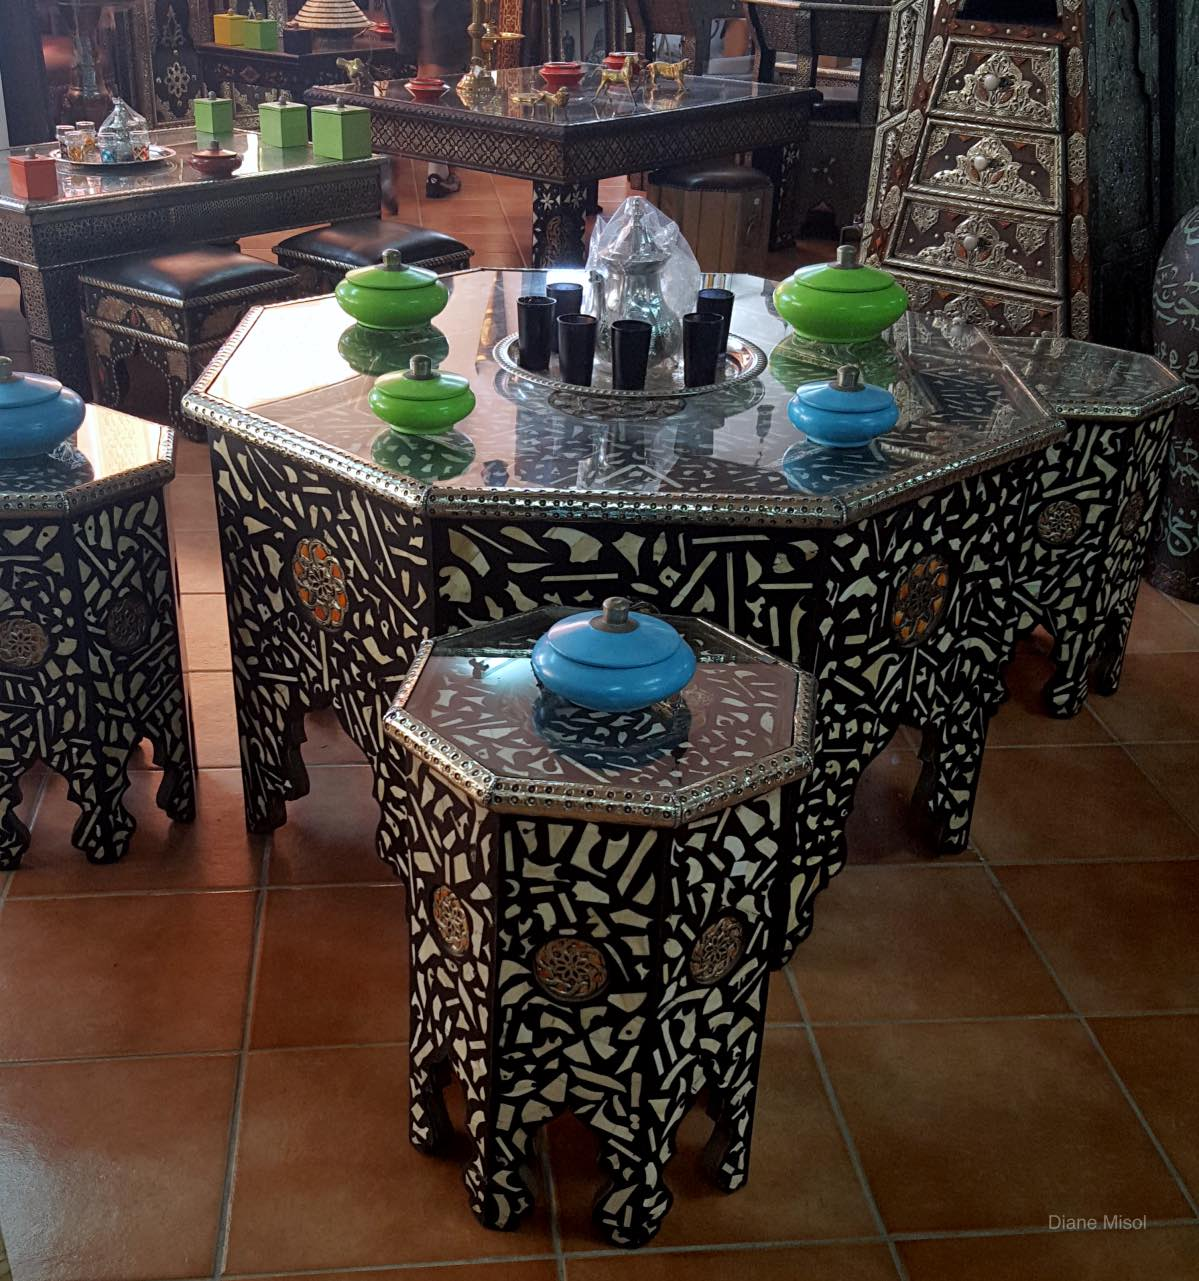 Unique Table Set in a Furniture Store, Agadir, Morocco